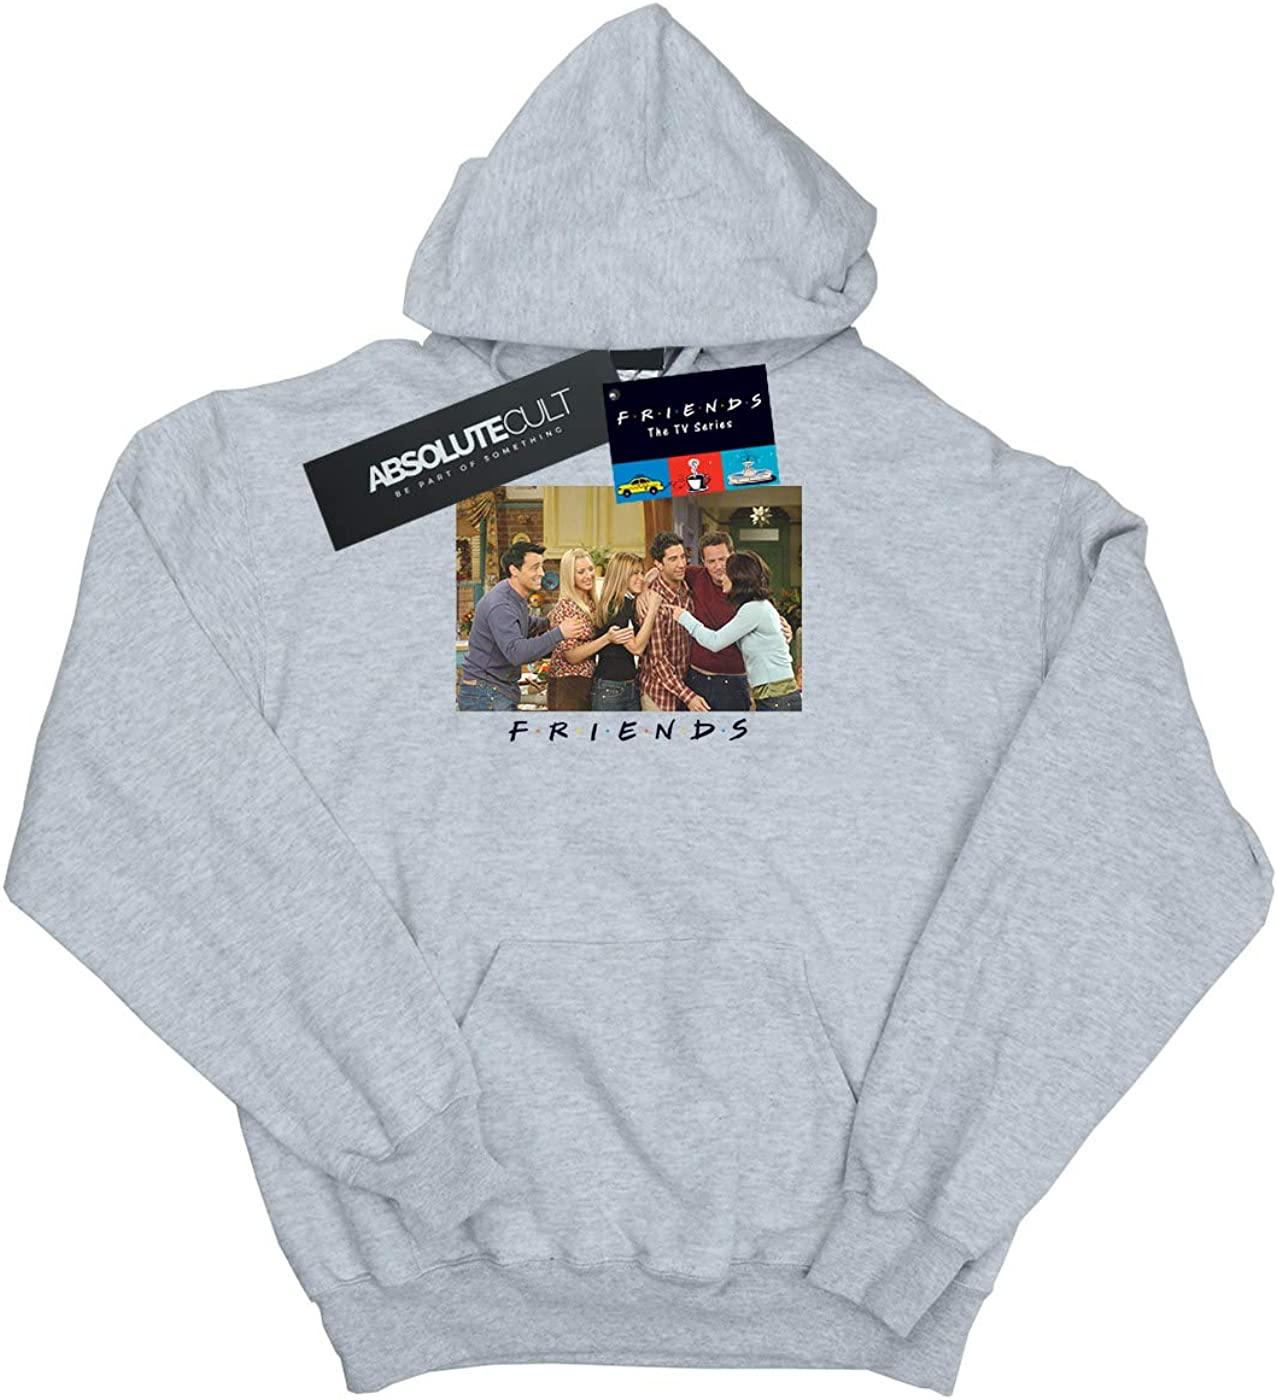 Absolute Cult Friends Girls Group Photo Apartment Hoodie